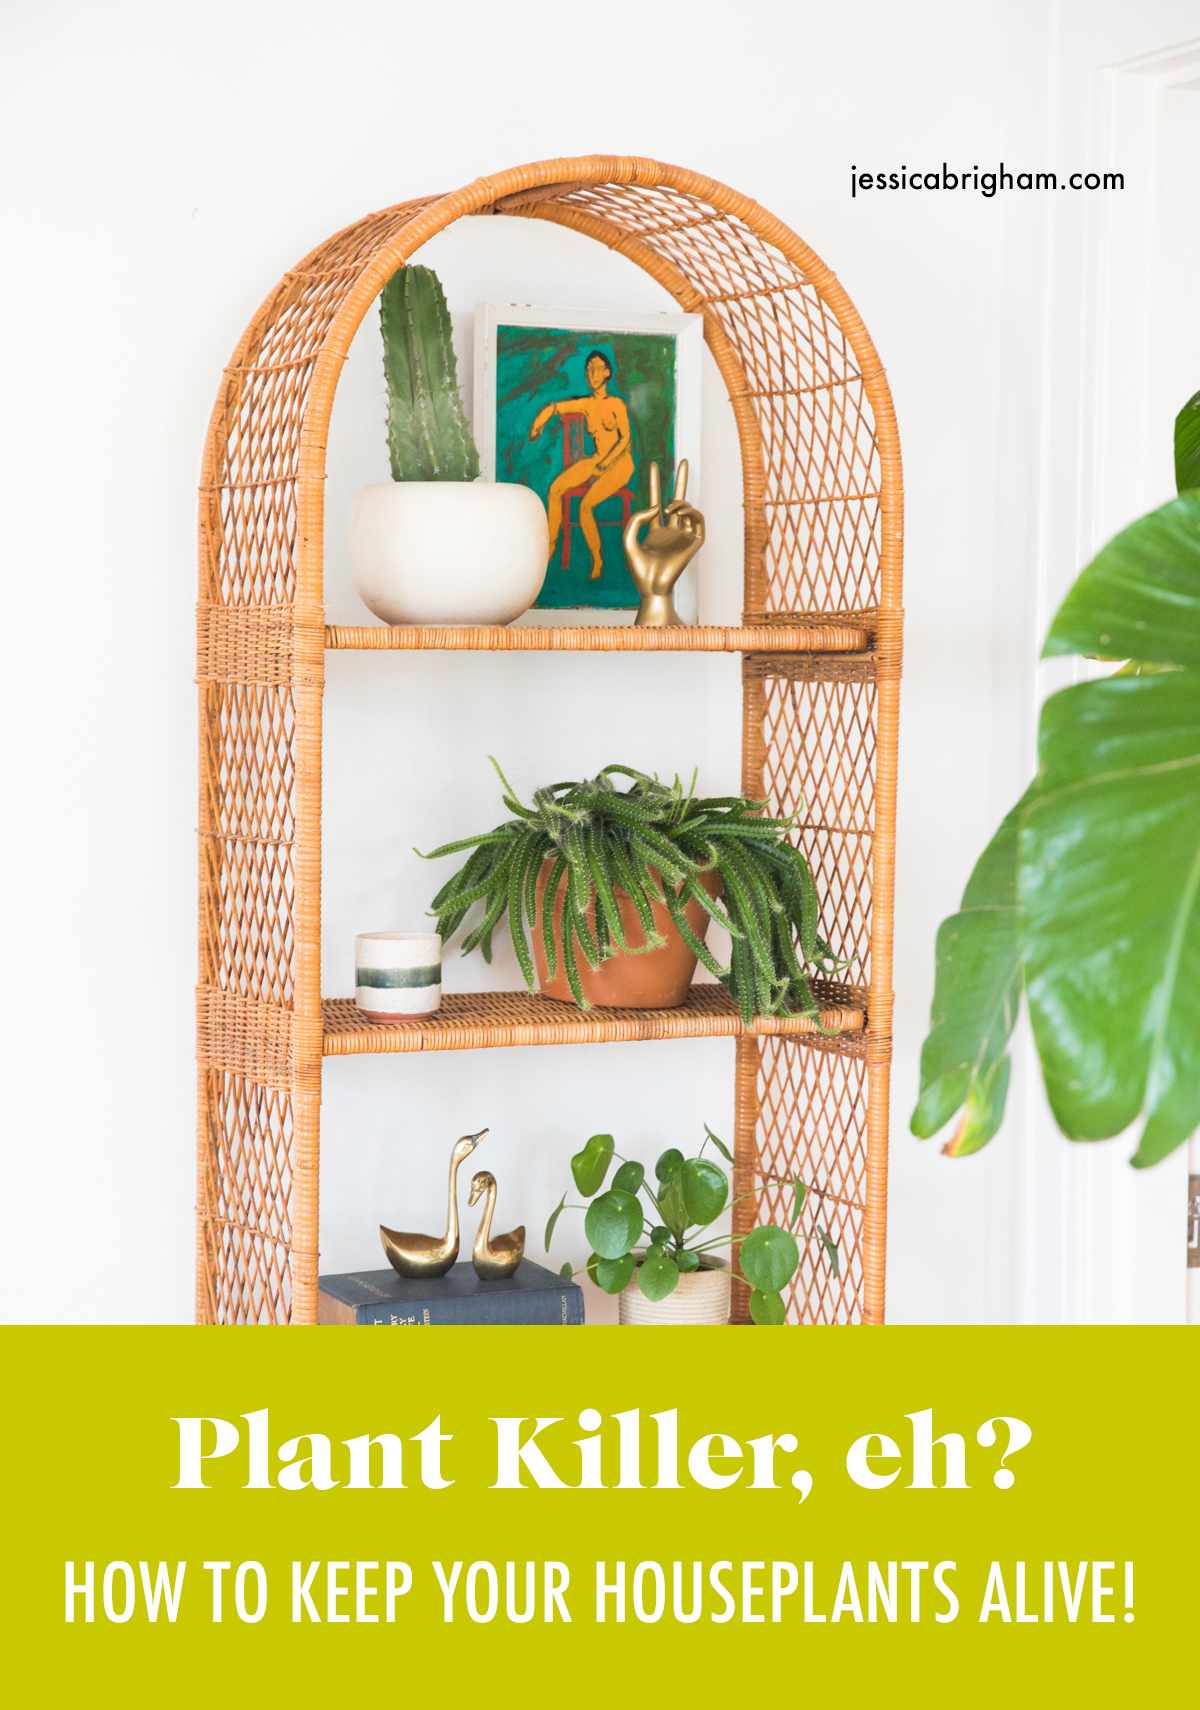 How to Keep Your Houseplants Alive | Best Indoor House Plants | Gardening Tips | Jessica Brigham | Magazine Ready for Life